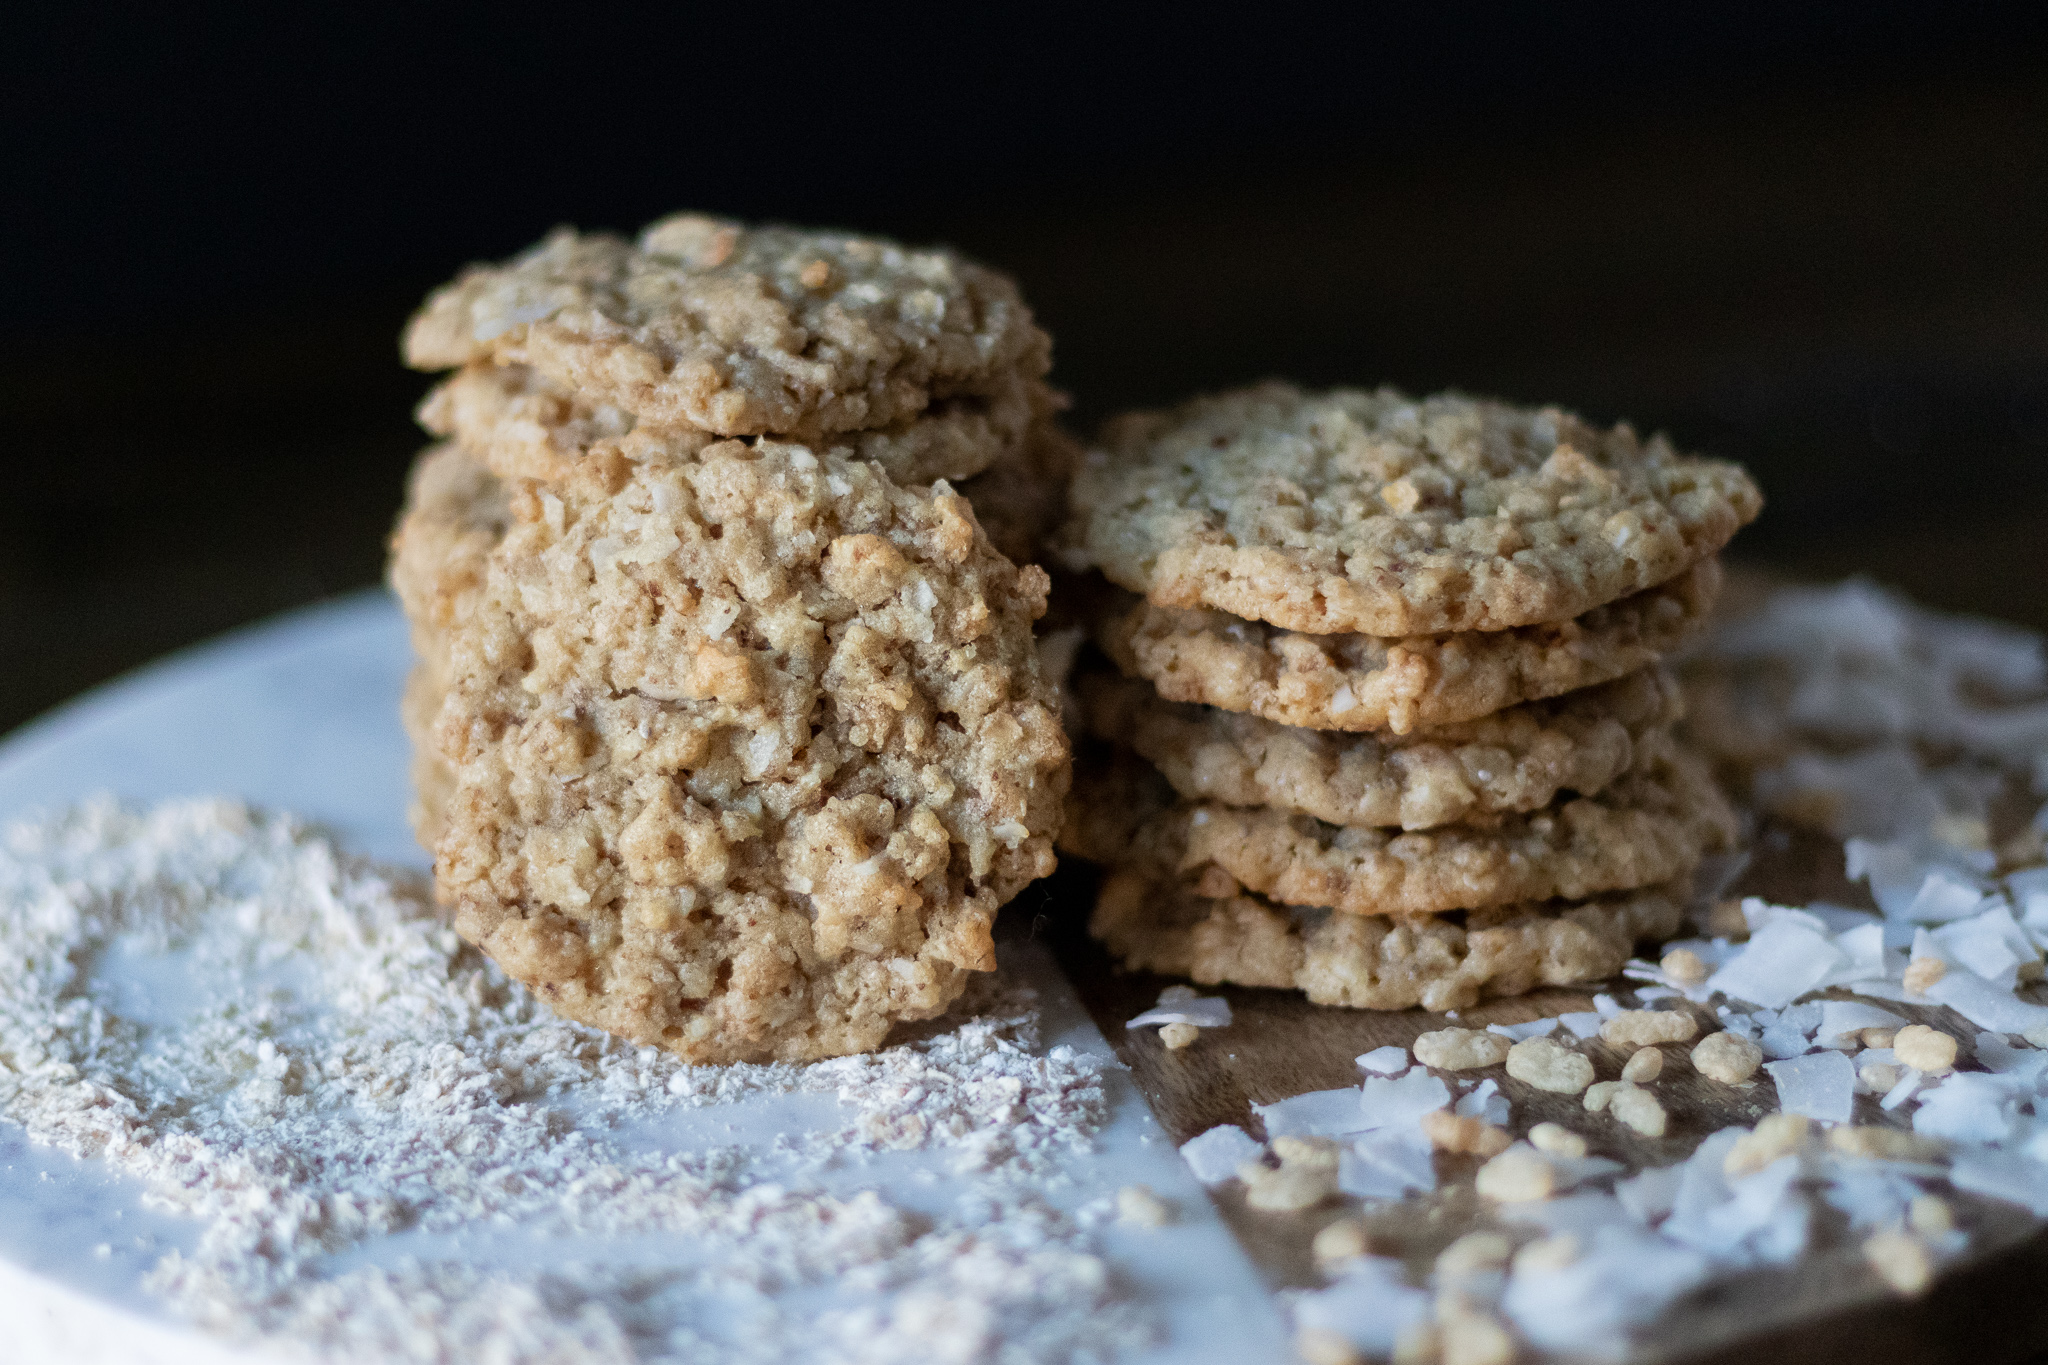 Growing up, ranger cookies were hands down my favorite treat. We would buy them from our local grocery store's bakery. After growing up and moving away, I would still pop in a buy a pack when visiting my parents. Eventually we went vegan , and it finally occurred to me to search for a recipe, and try to veganize my favorite cookie!. These taste just like the the ranger cookies I grew up eating. These cookies are chewy, and coconutty, with little crispy bits from the rice cereal. So if you have never had or even heard of a ranger cookie, bake up a batch. I think you might just love them as much as I do!